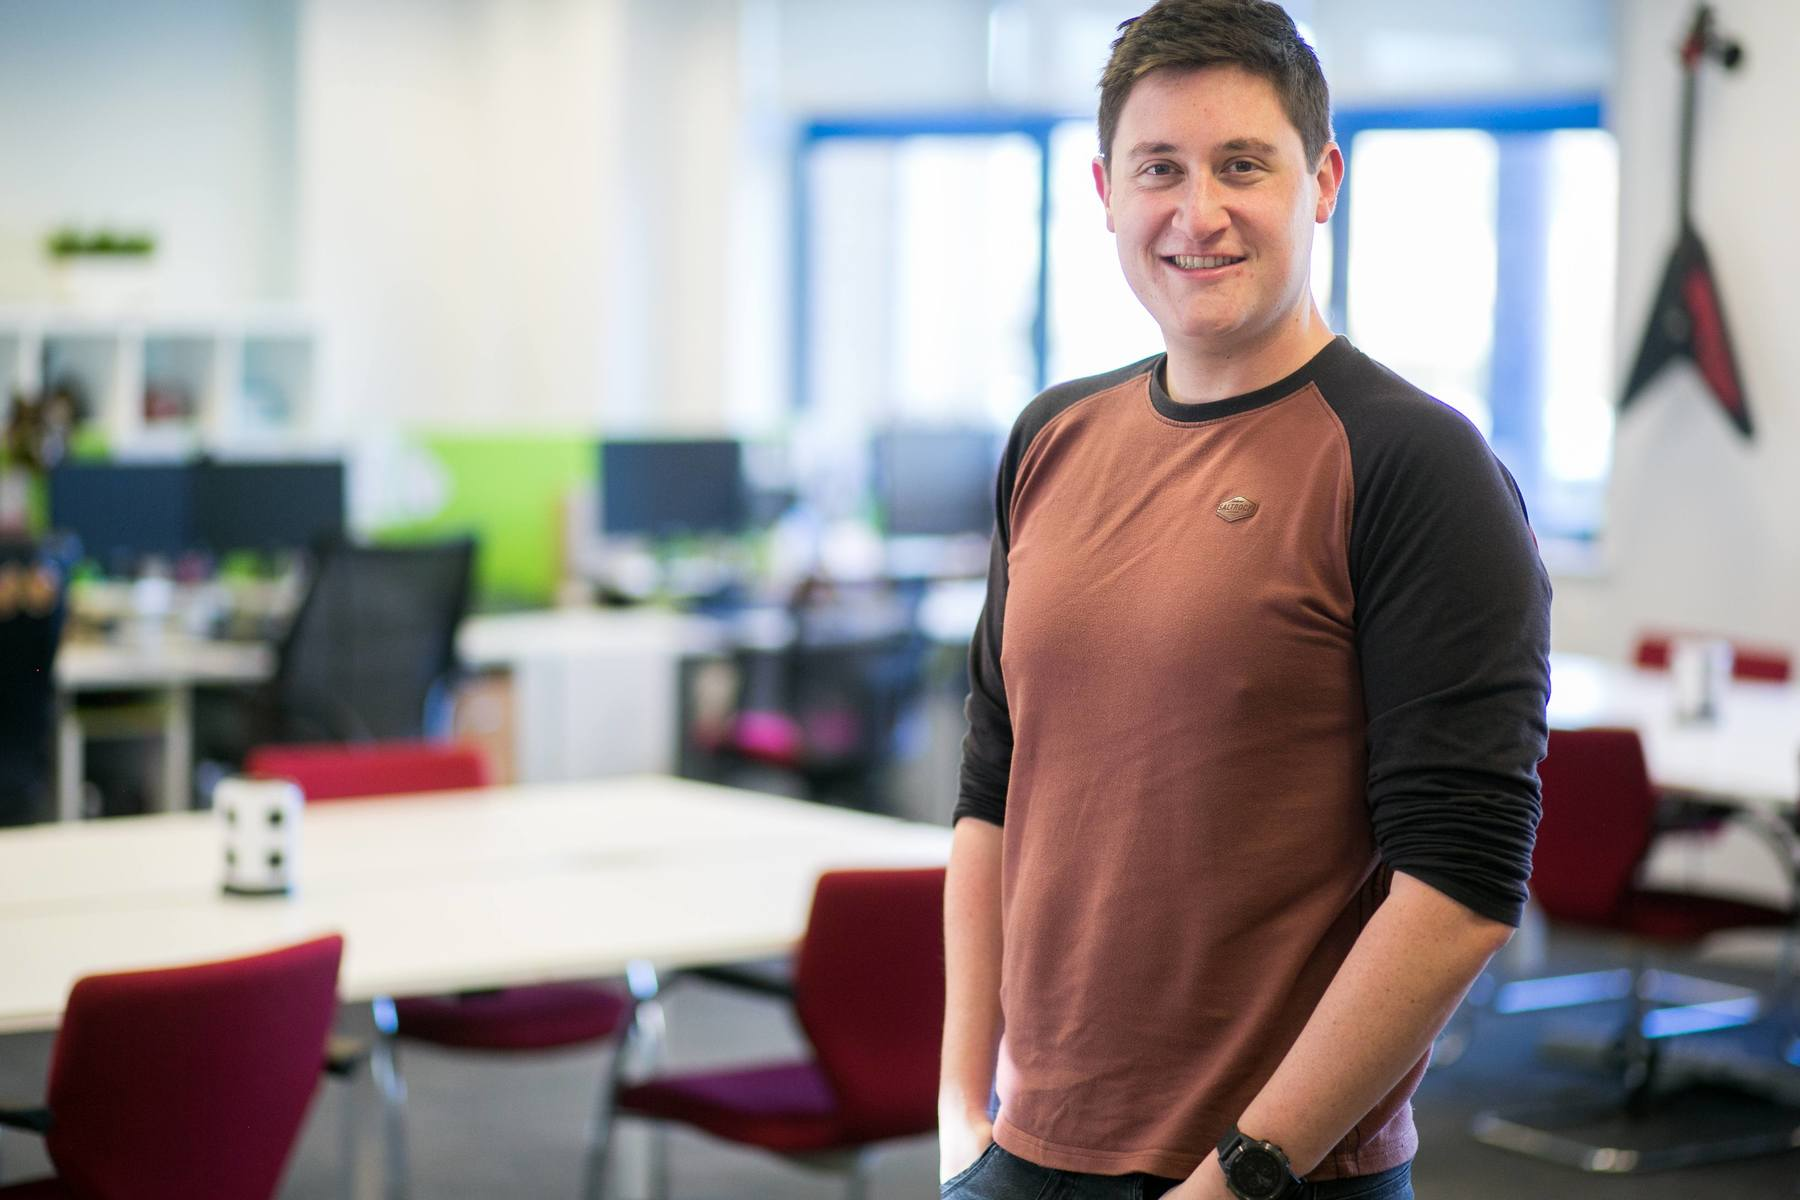 Co-founder Kieran Abbott recognised as one of the 25